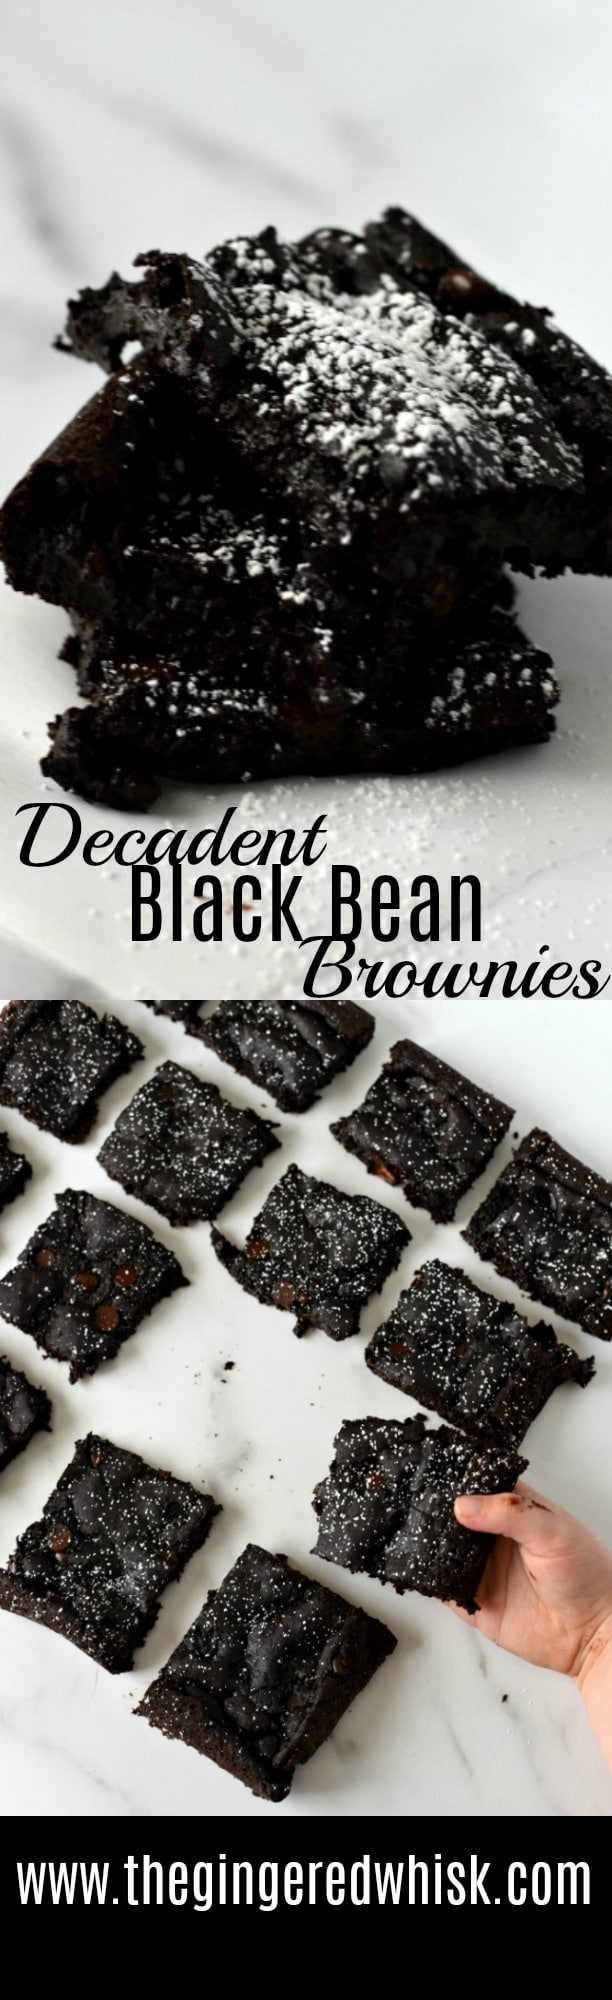 These brownies are decadent, rich, and moist. But surprise! There is no flour! Instead they are packed with protein rich black beans - and sooo delicious! 